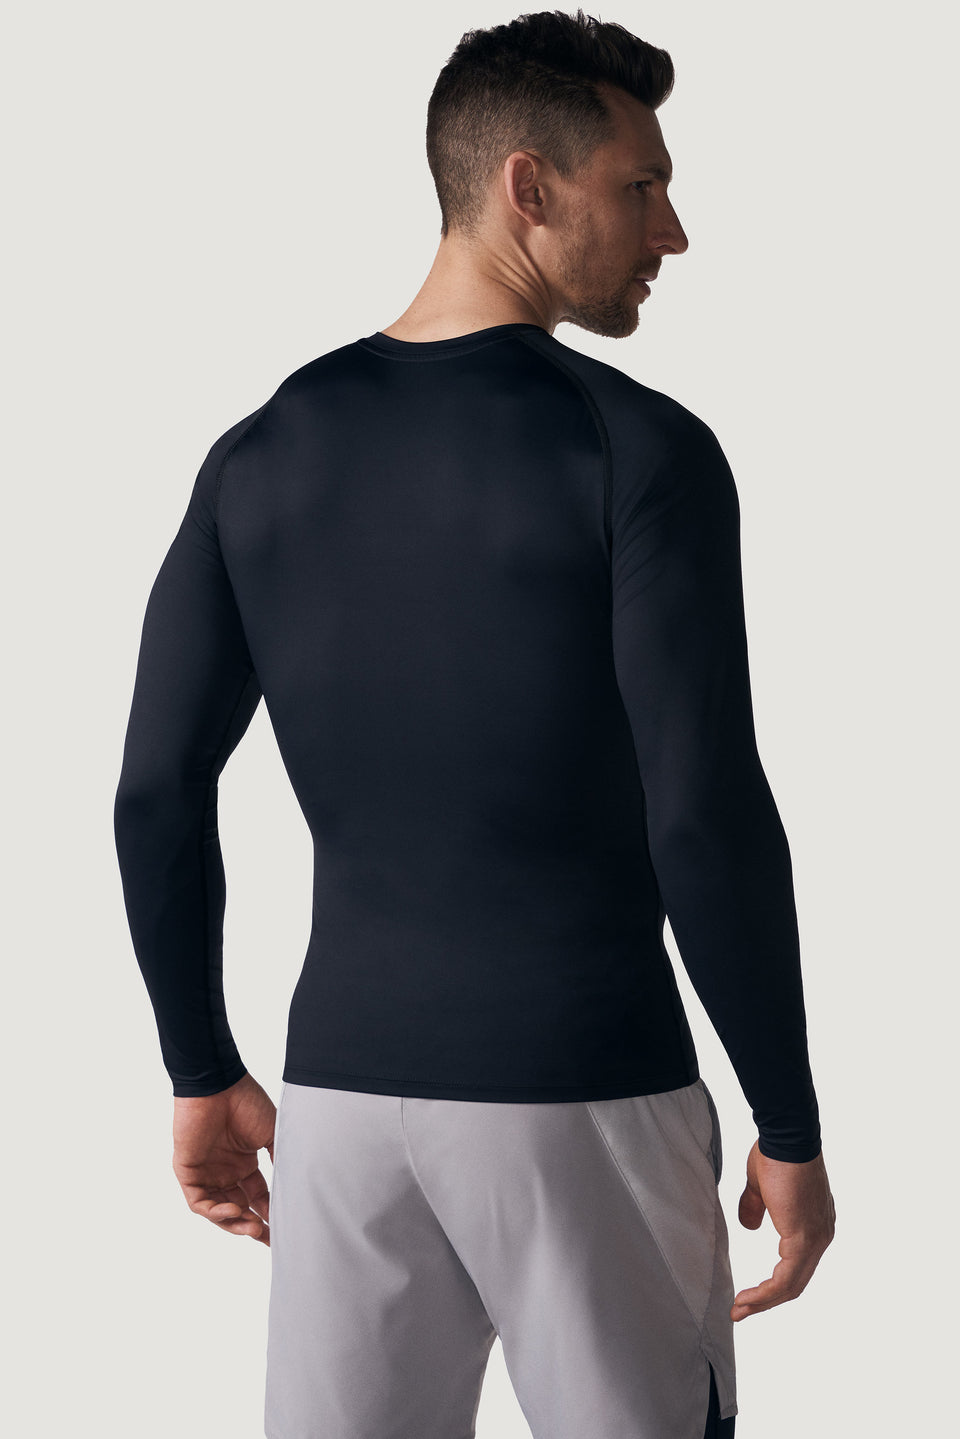 Progress Men's Longsleeve Compression Jersey